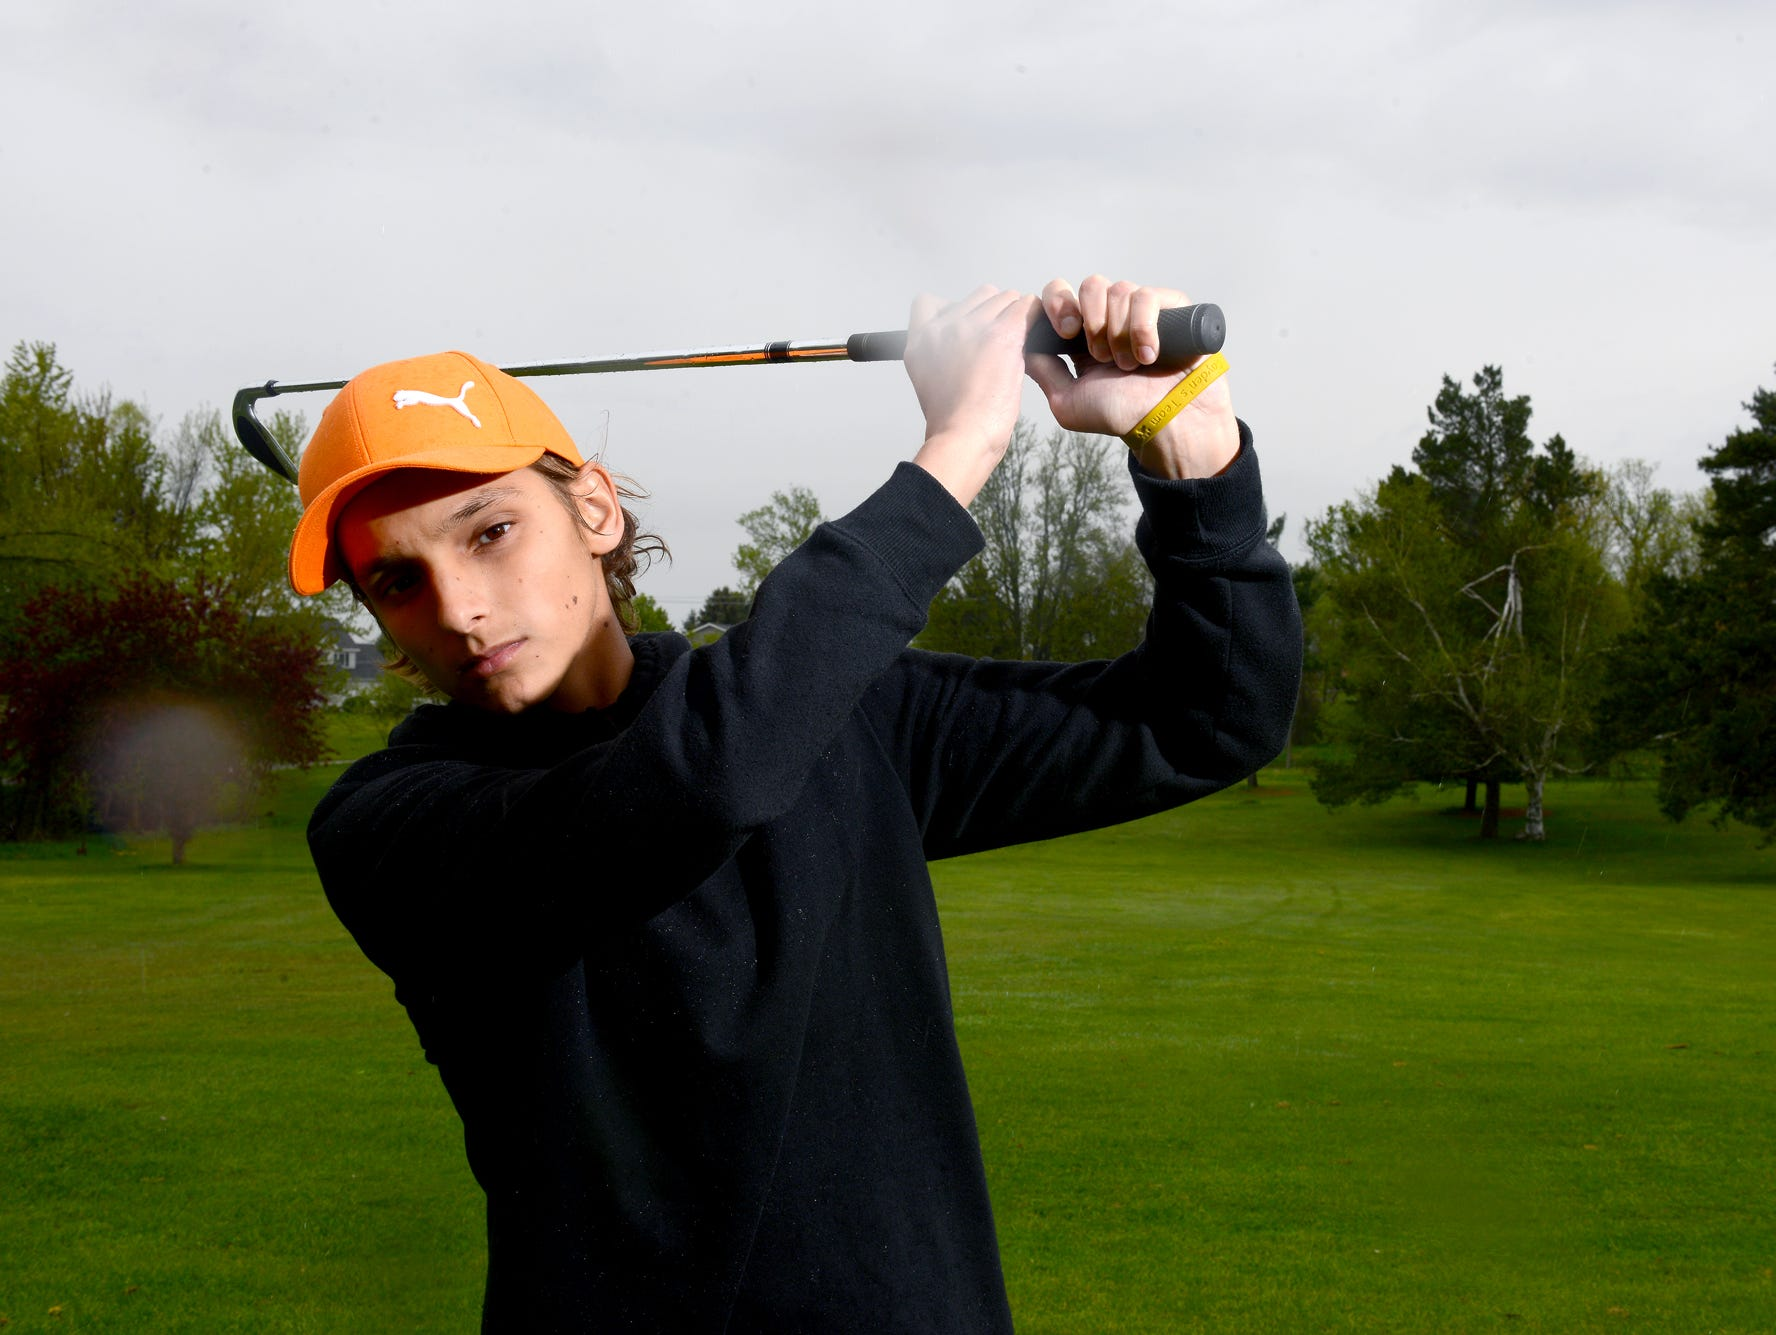 """Cayden Patrick continues to battle nasopharyngeal carcinoma, a rare form of cancer, however he still an active member of the Laingsburg High School golf team. He's pictured here, with """"Cayden's Team"""" bracelet, Tuesday, May 10, 2016 at the Pine Hills Golf Course in Laingsburg."""